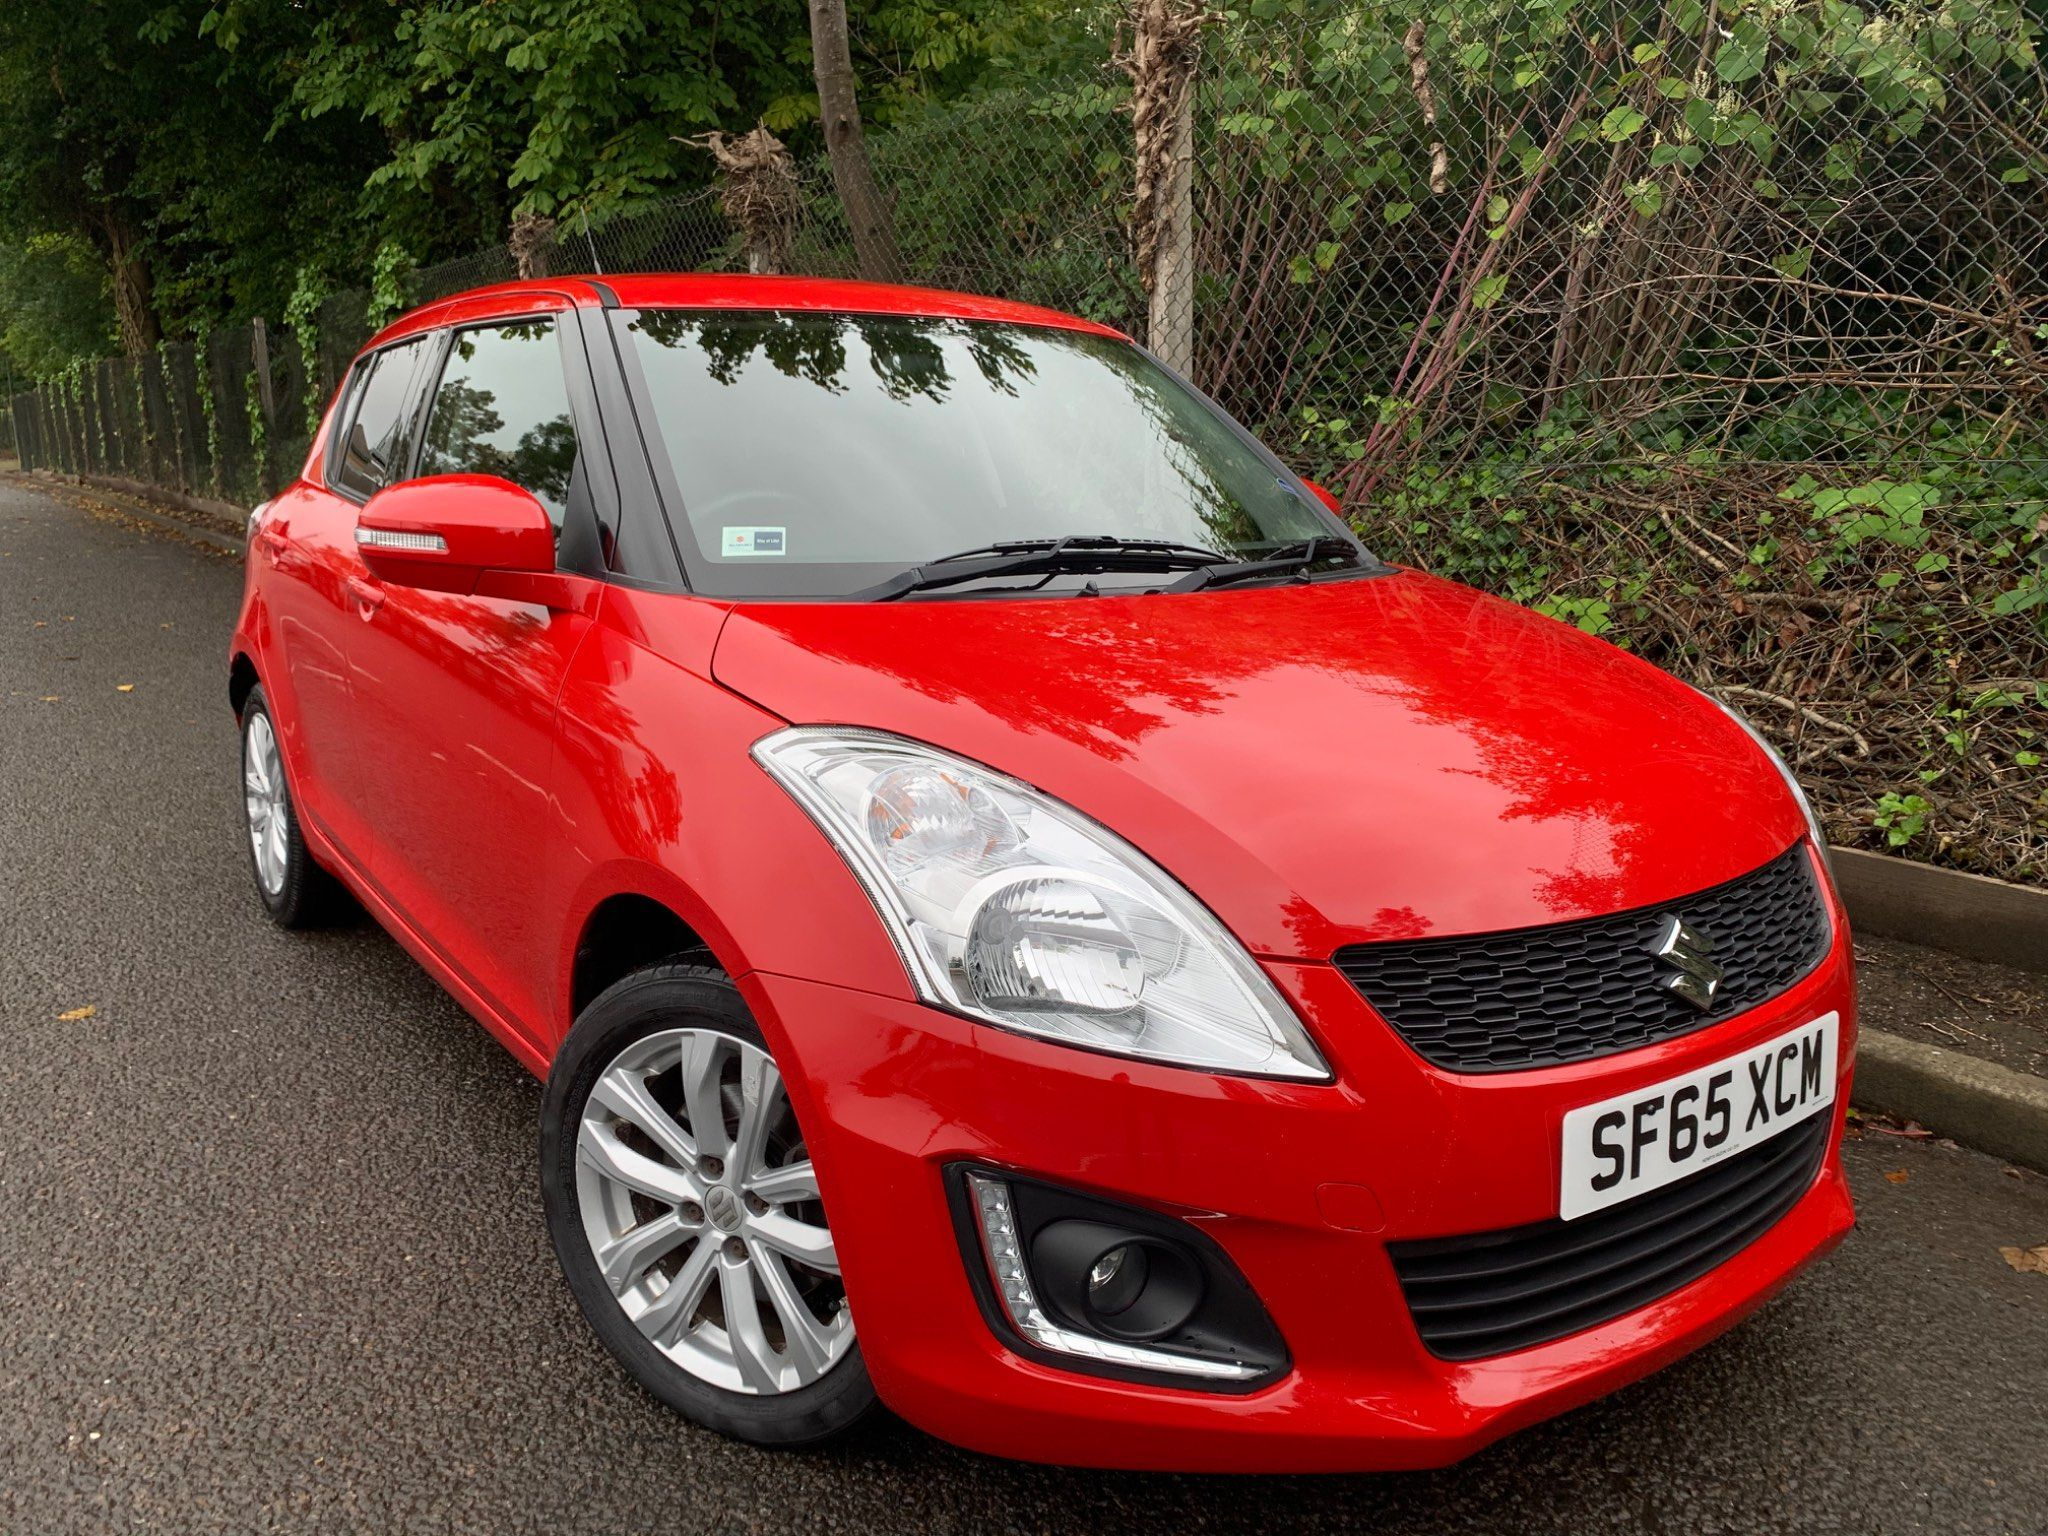 Suzuki Swift 1.2 SZ4 AT 5dr (+Nav)